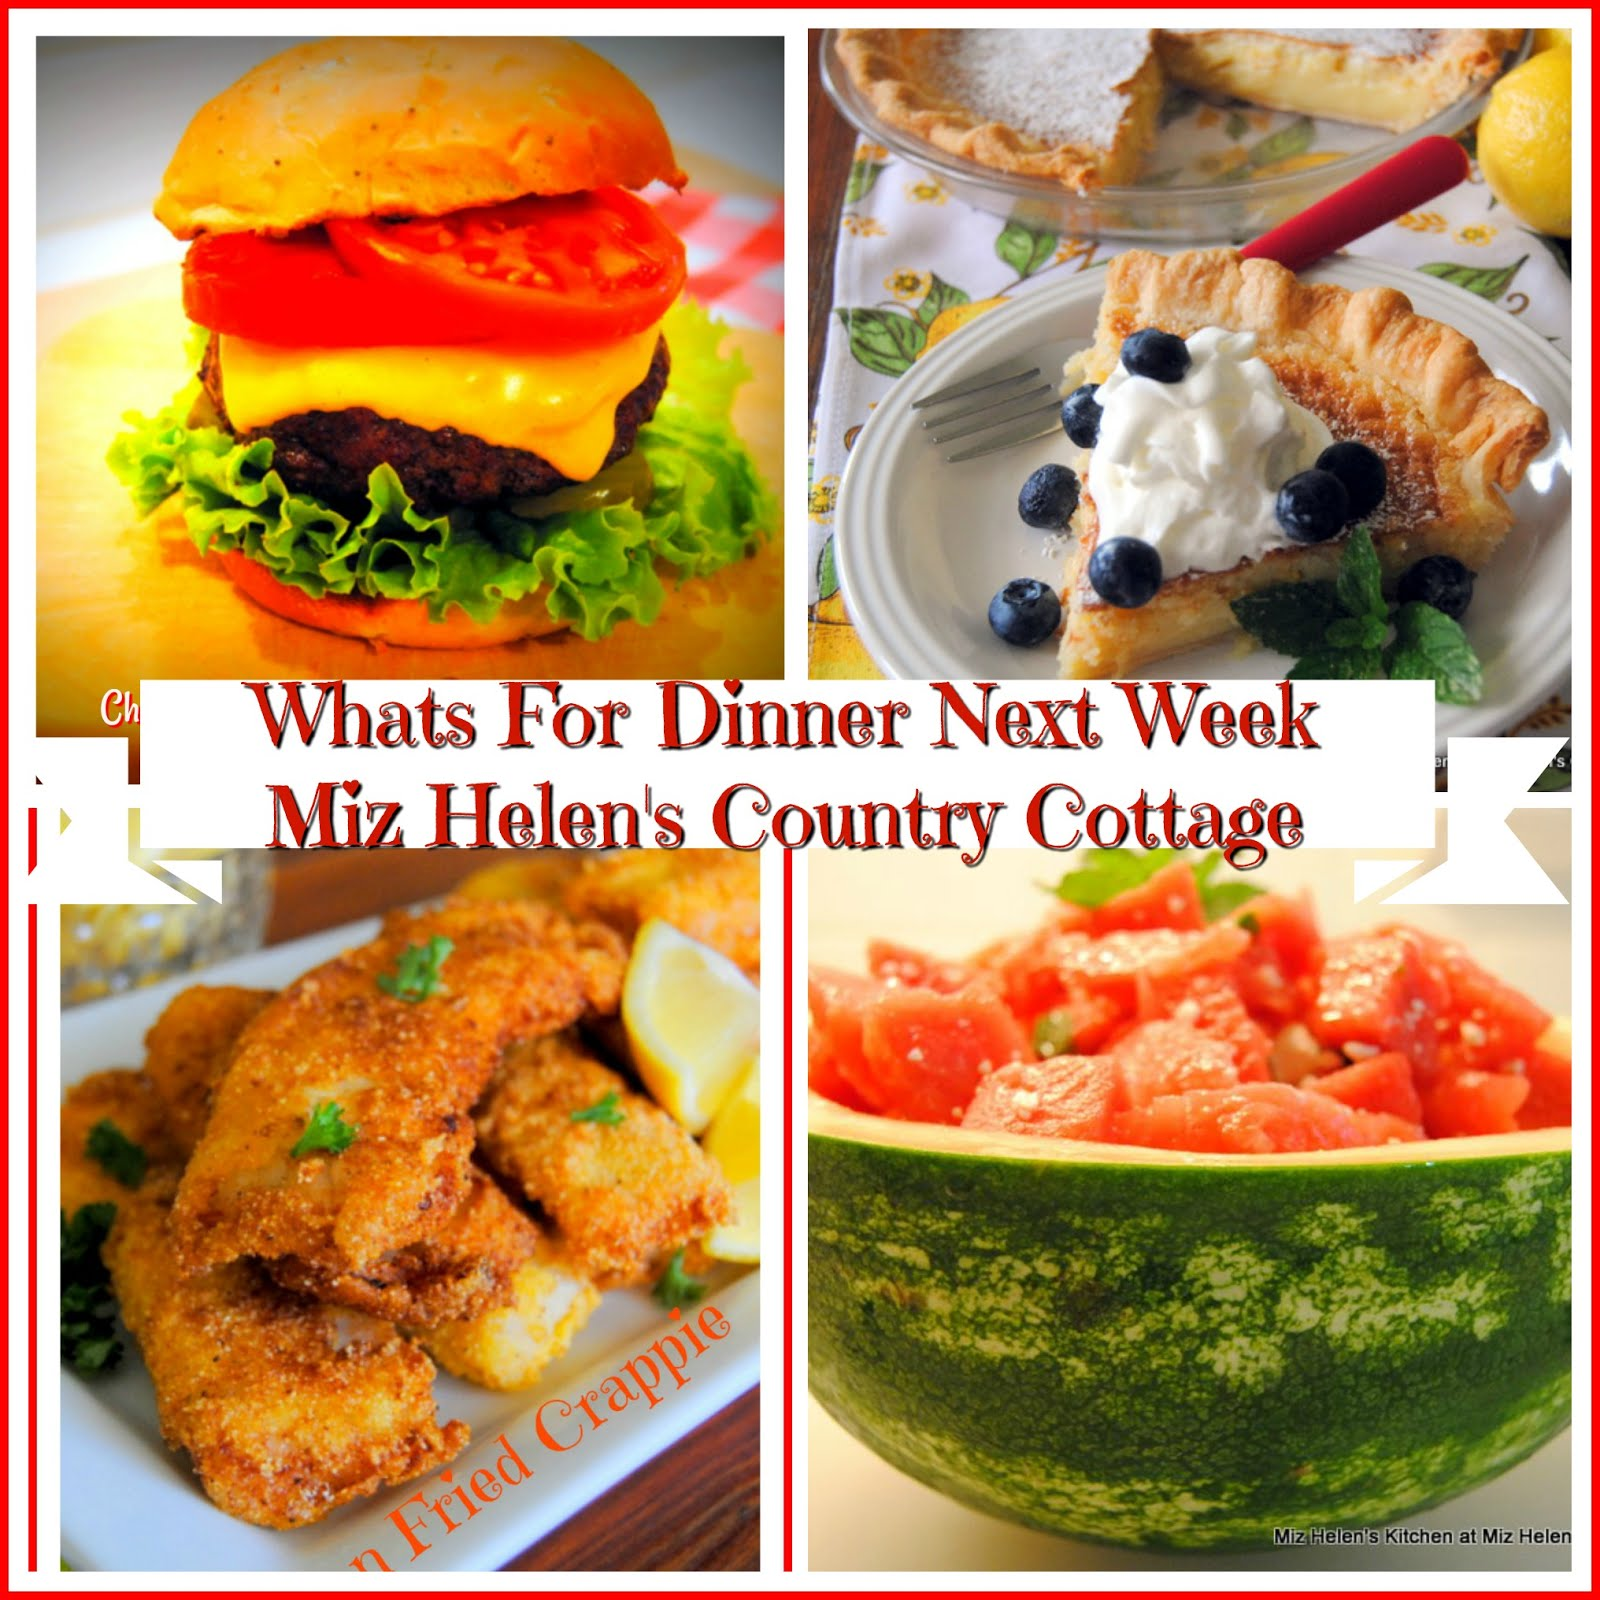 Whats For Dinner Next Week * Week of 6-16-19